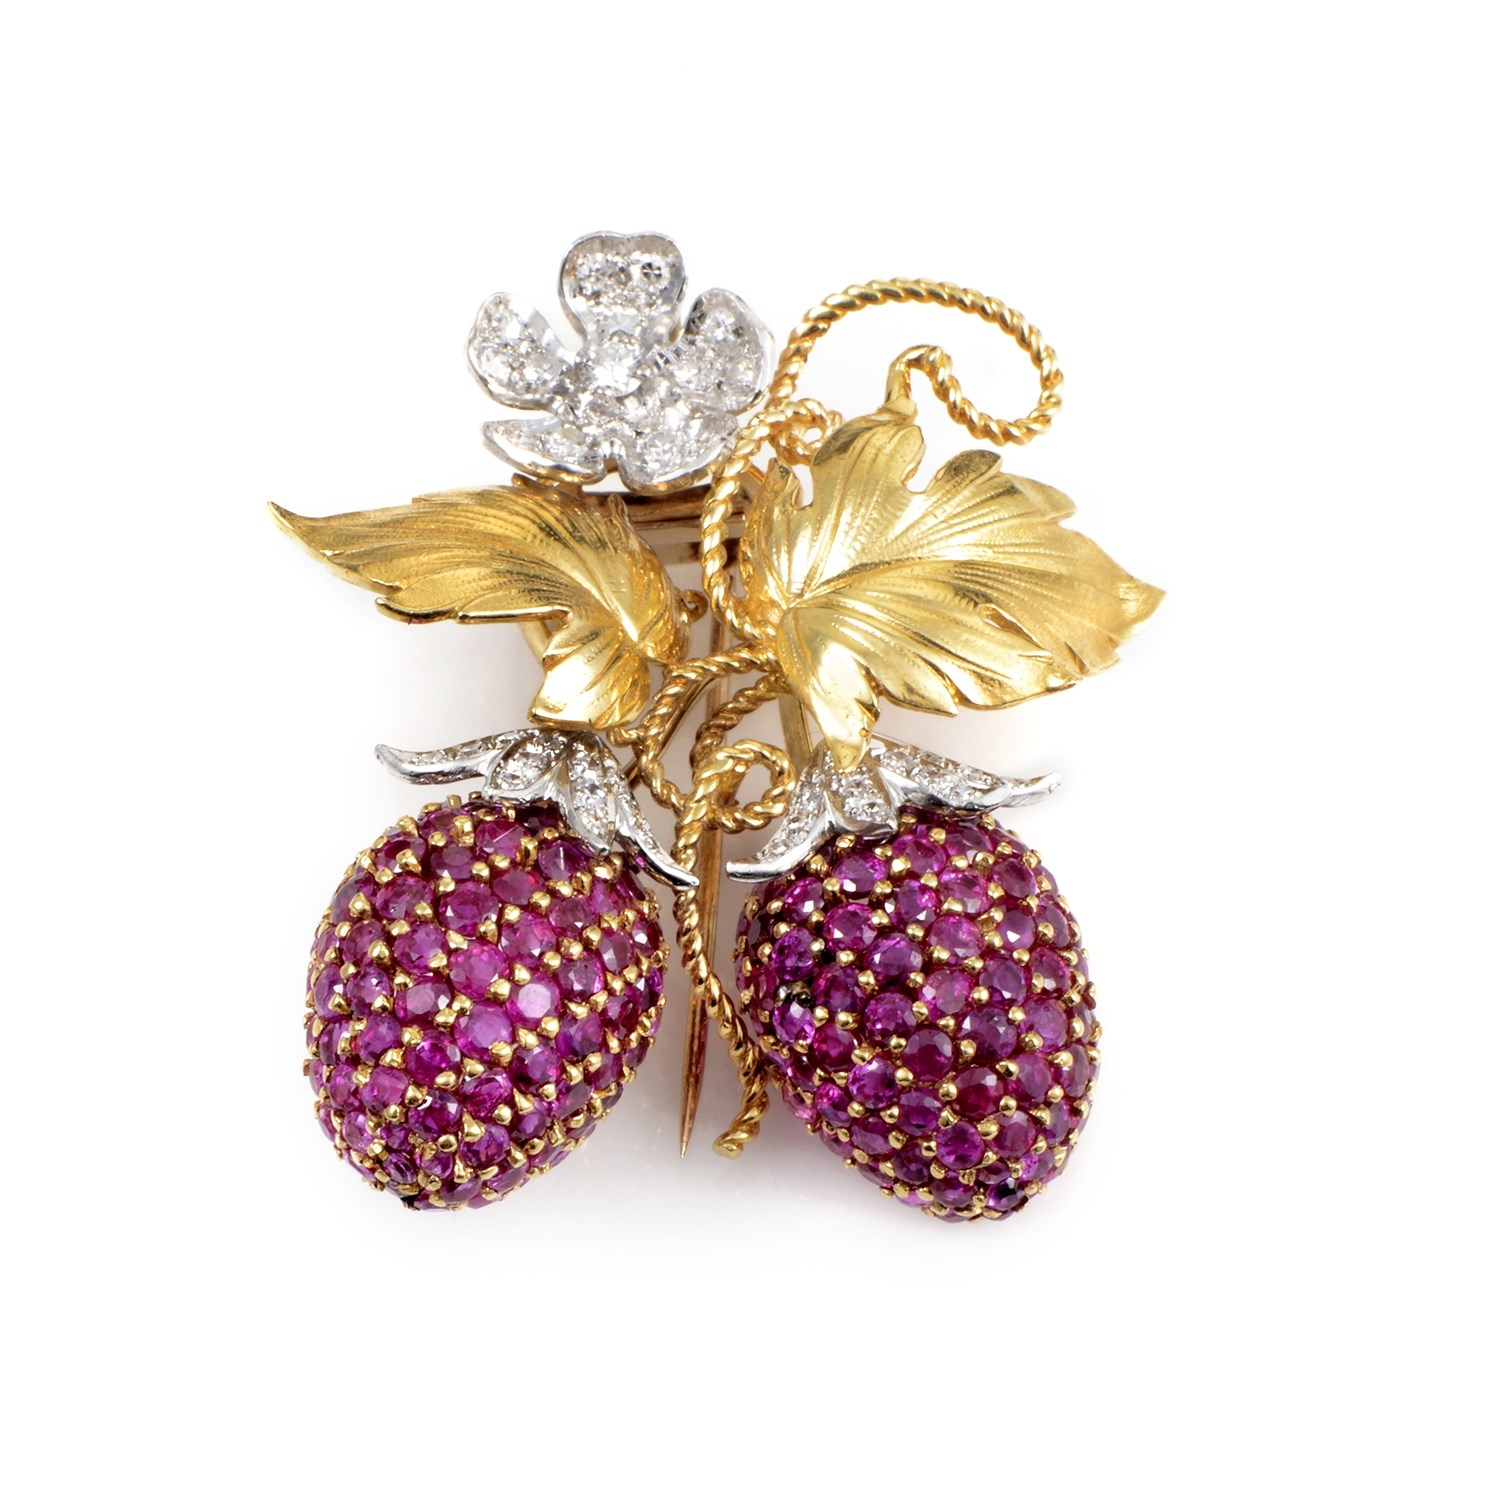 Women's Platinum & 18K Yellow Gold Diamond and Ruby Berry Brooch